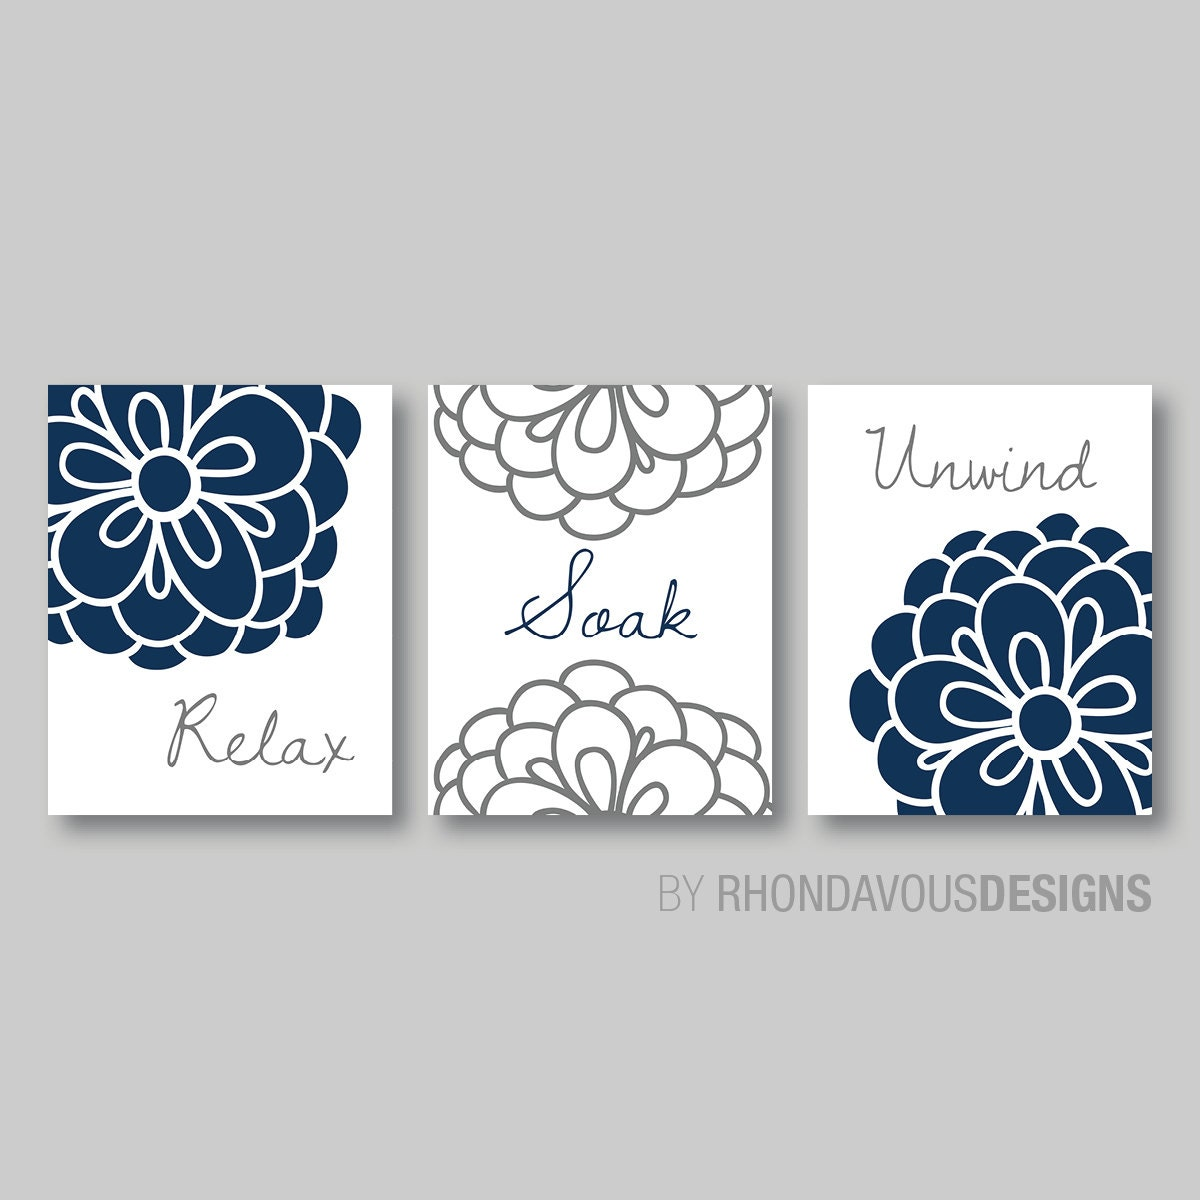 Floral relax soak unwind print trio bathroom home decor wall for Dark blue bathroom decor